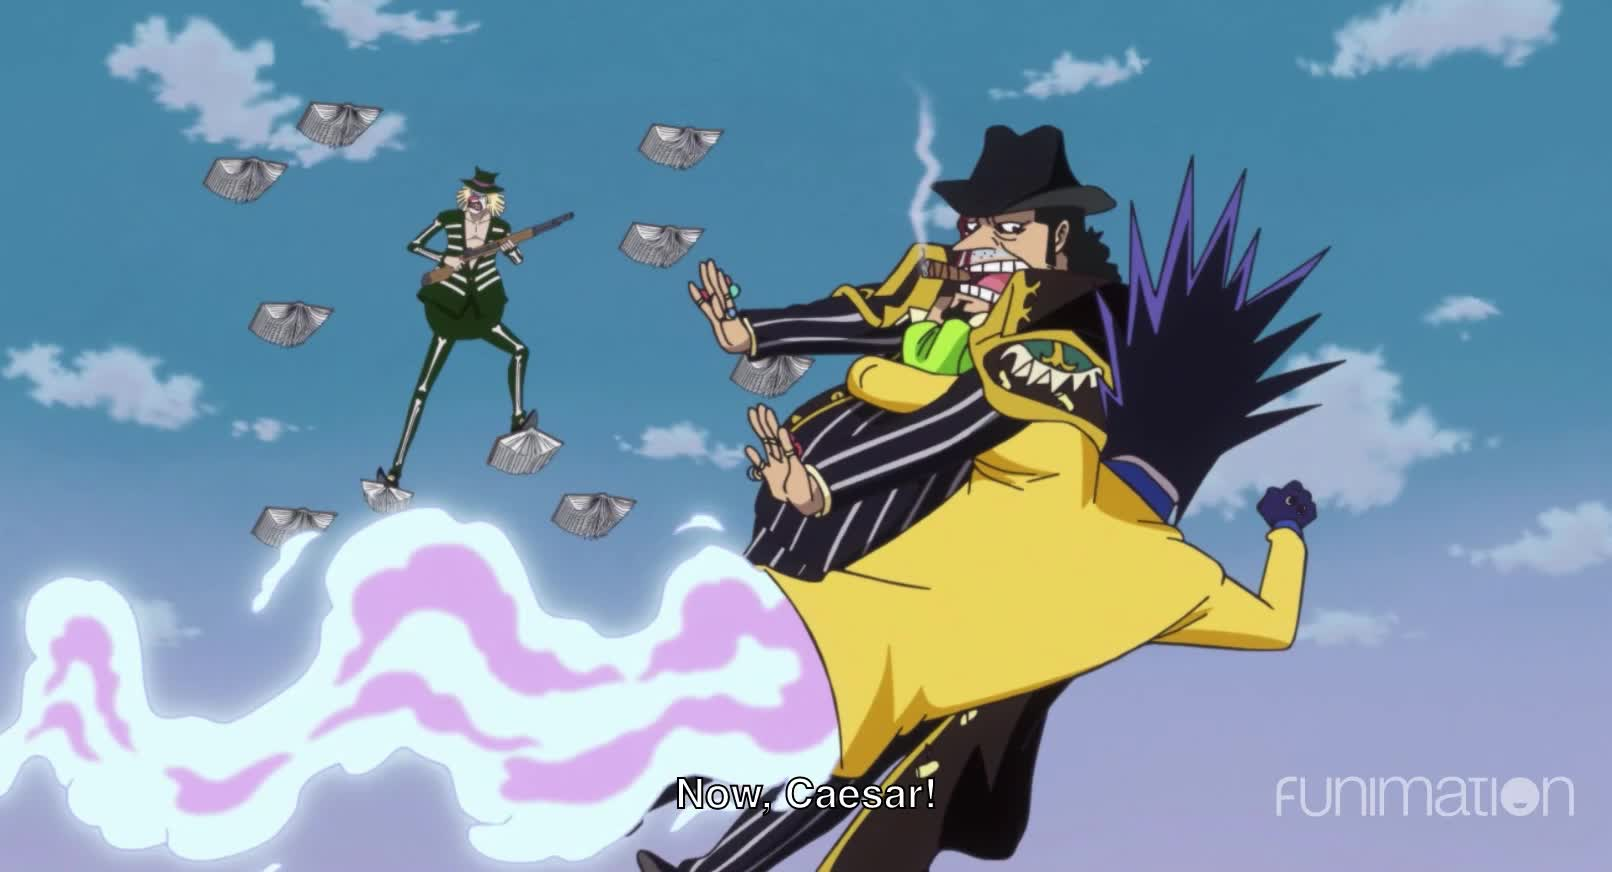 anime, ep842, funimation, funny, one piece, one piece episode 842, onepiece, saga of tanya the evil, Fast Coward GIFs